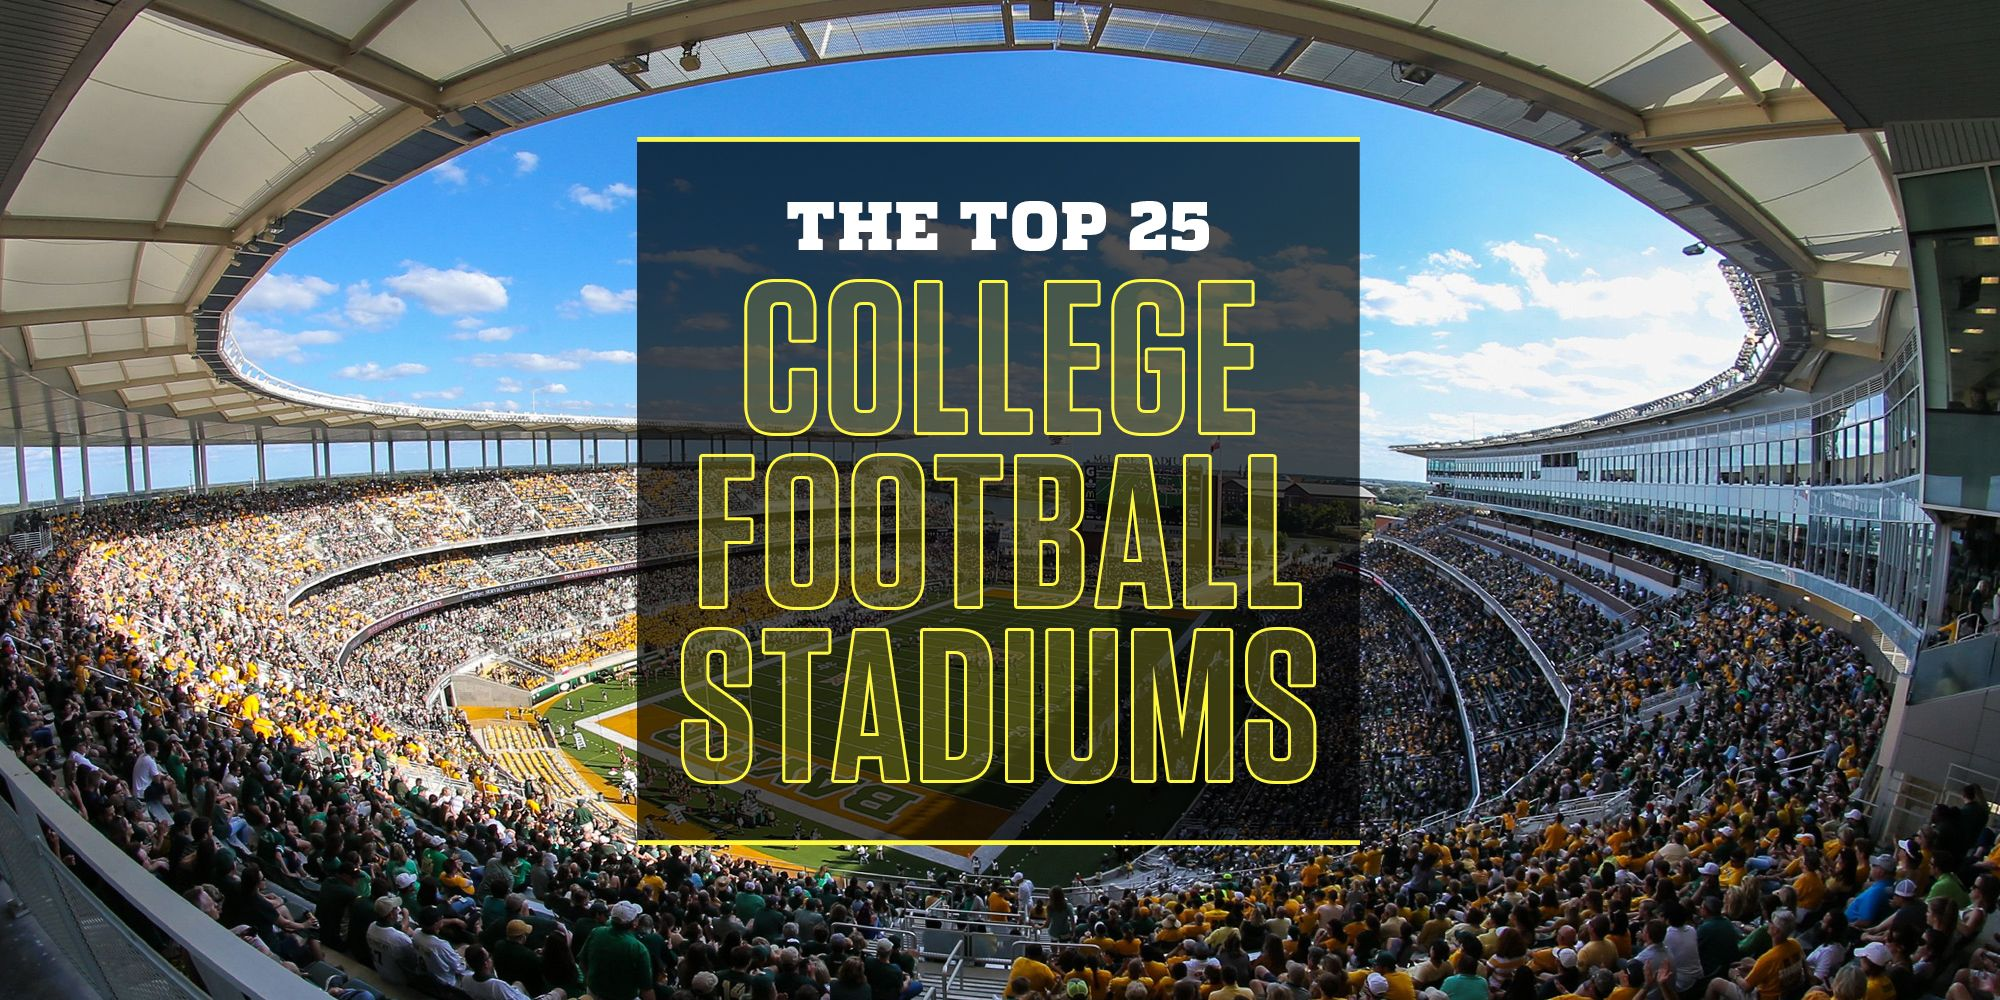 The Top 25 College Football Stadiums